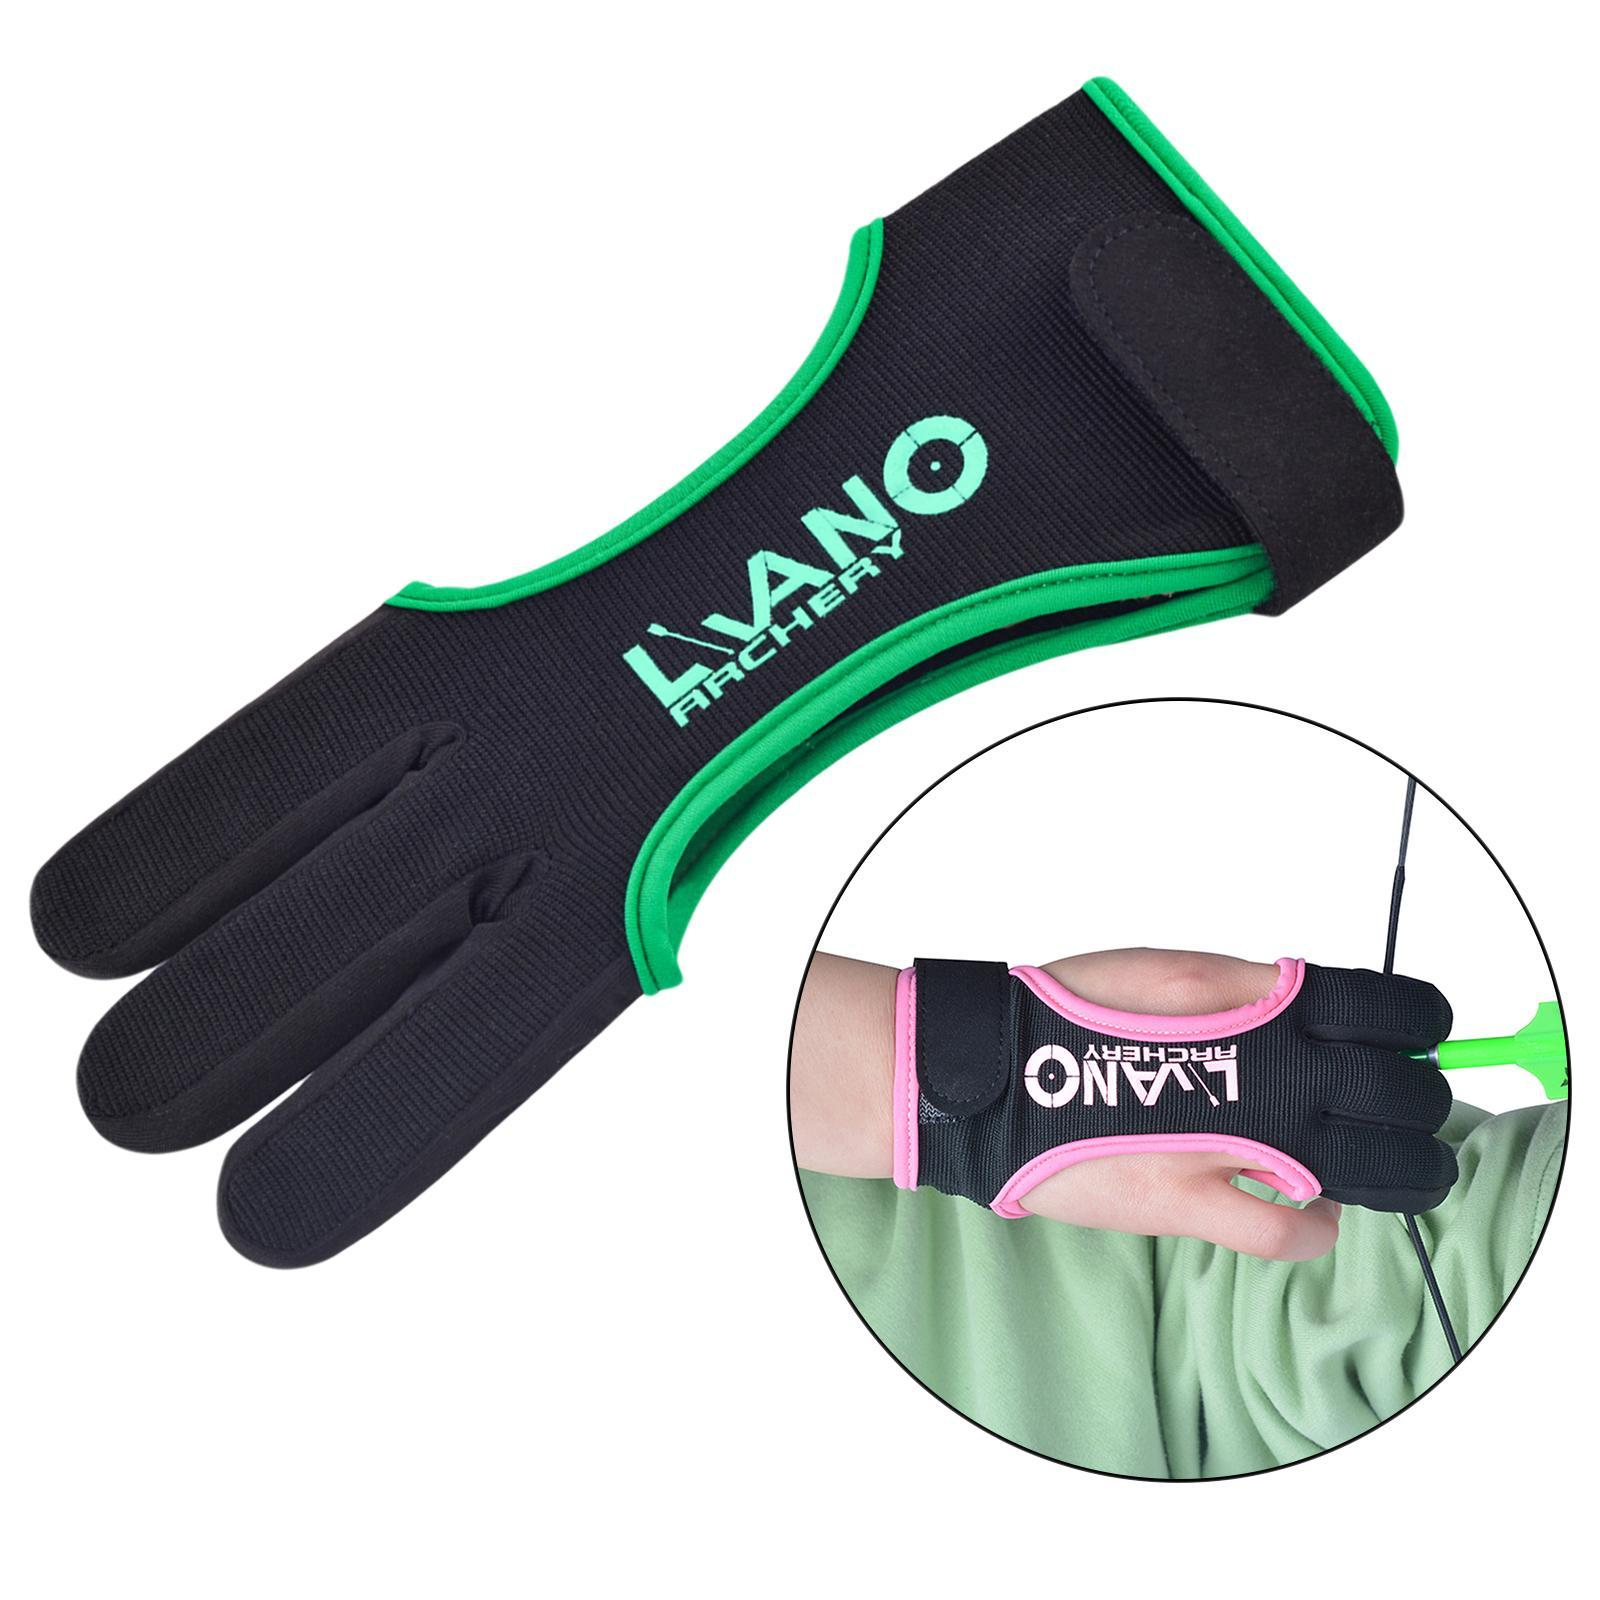 thumbnail 85 - Archery Glove for Recurve & Compound Bow 3 Finger Guard for Women Men Youth